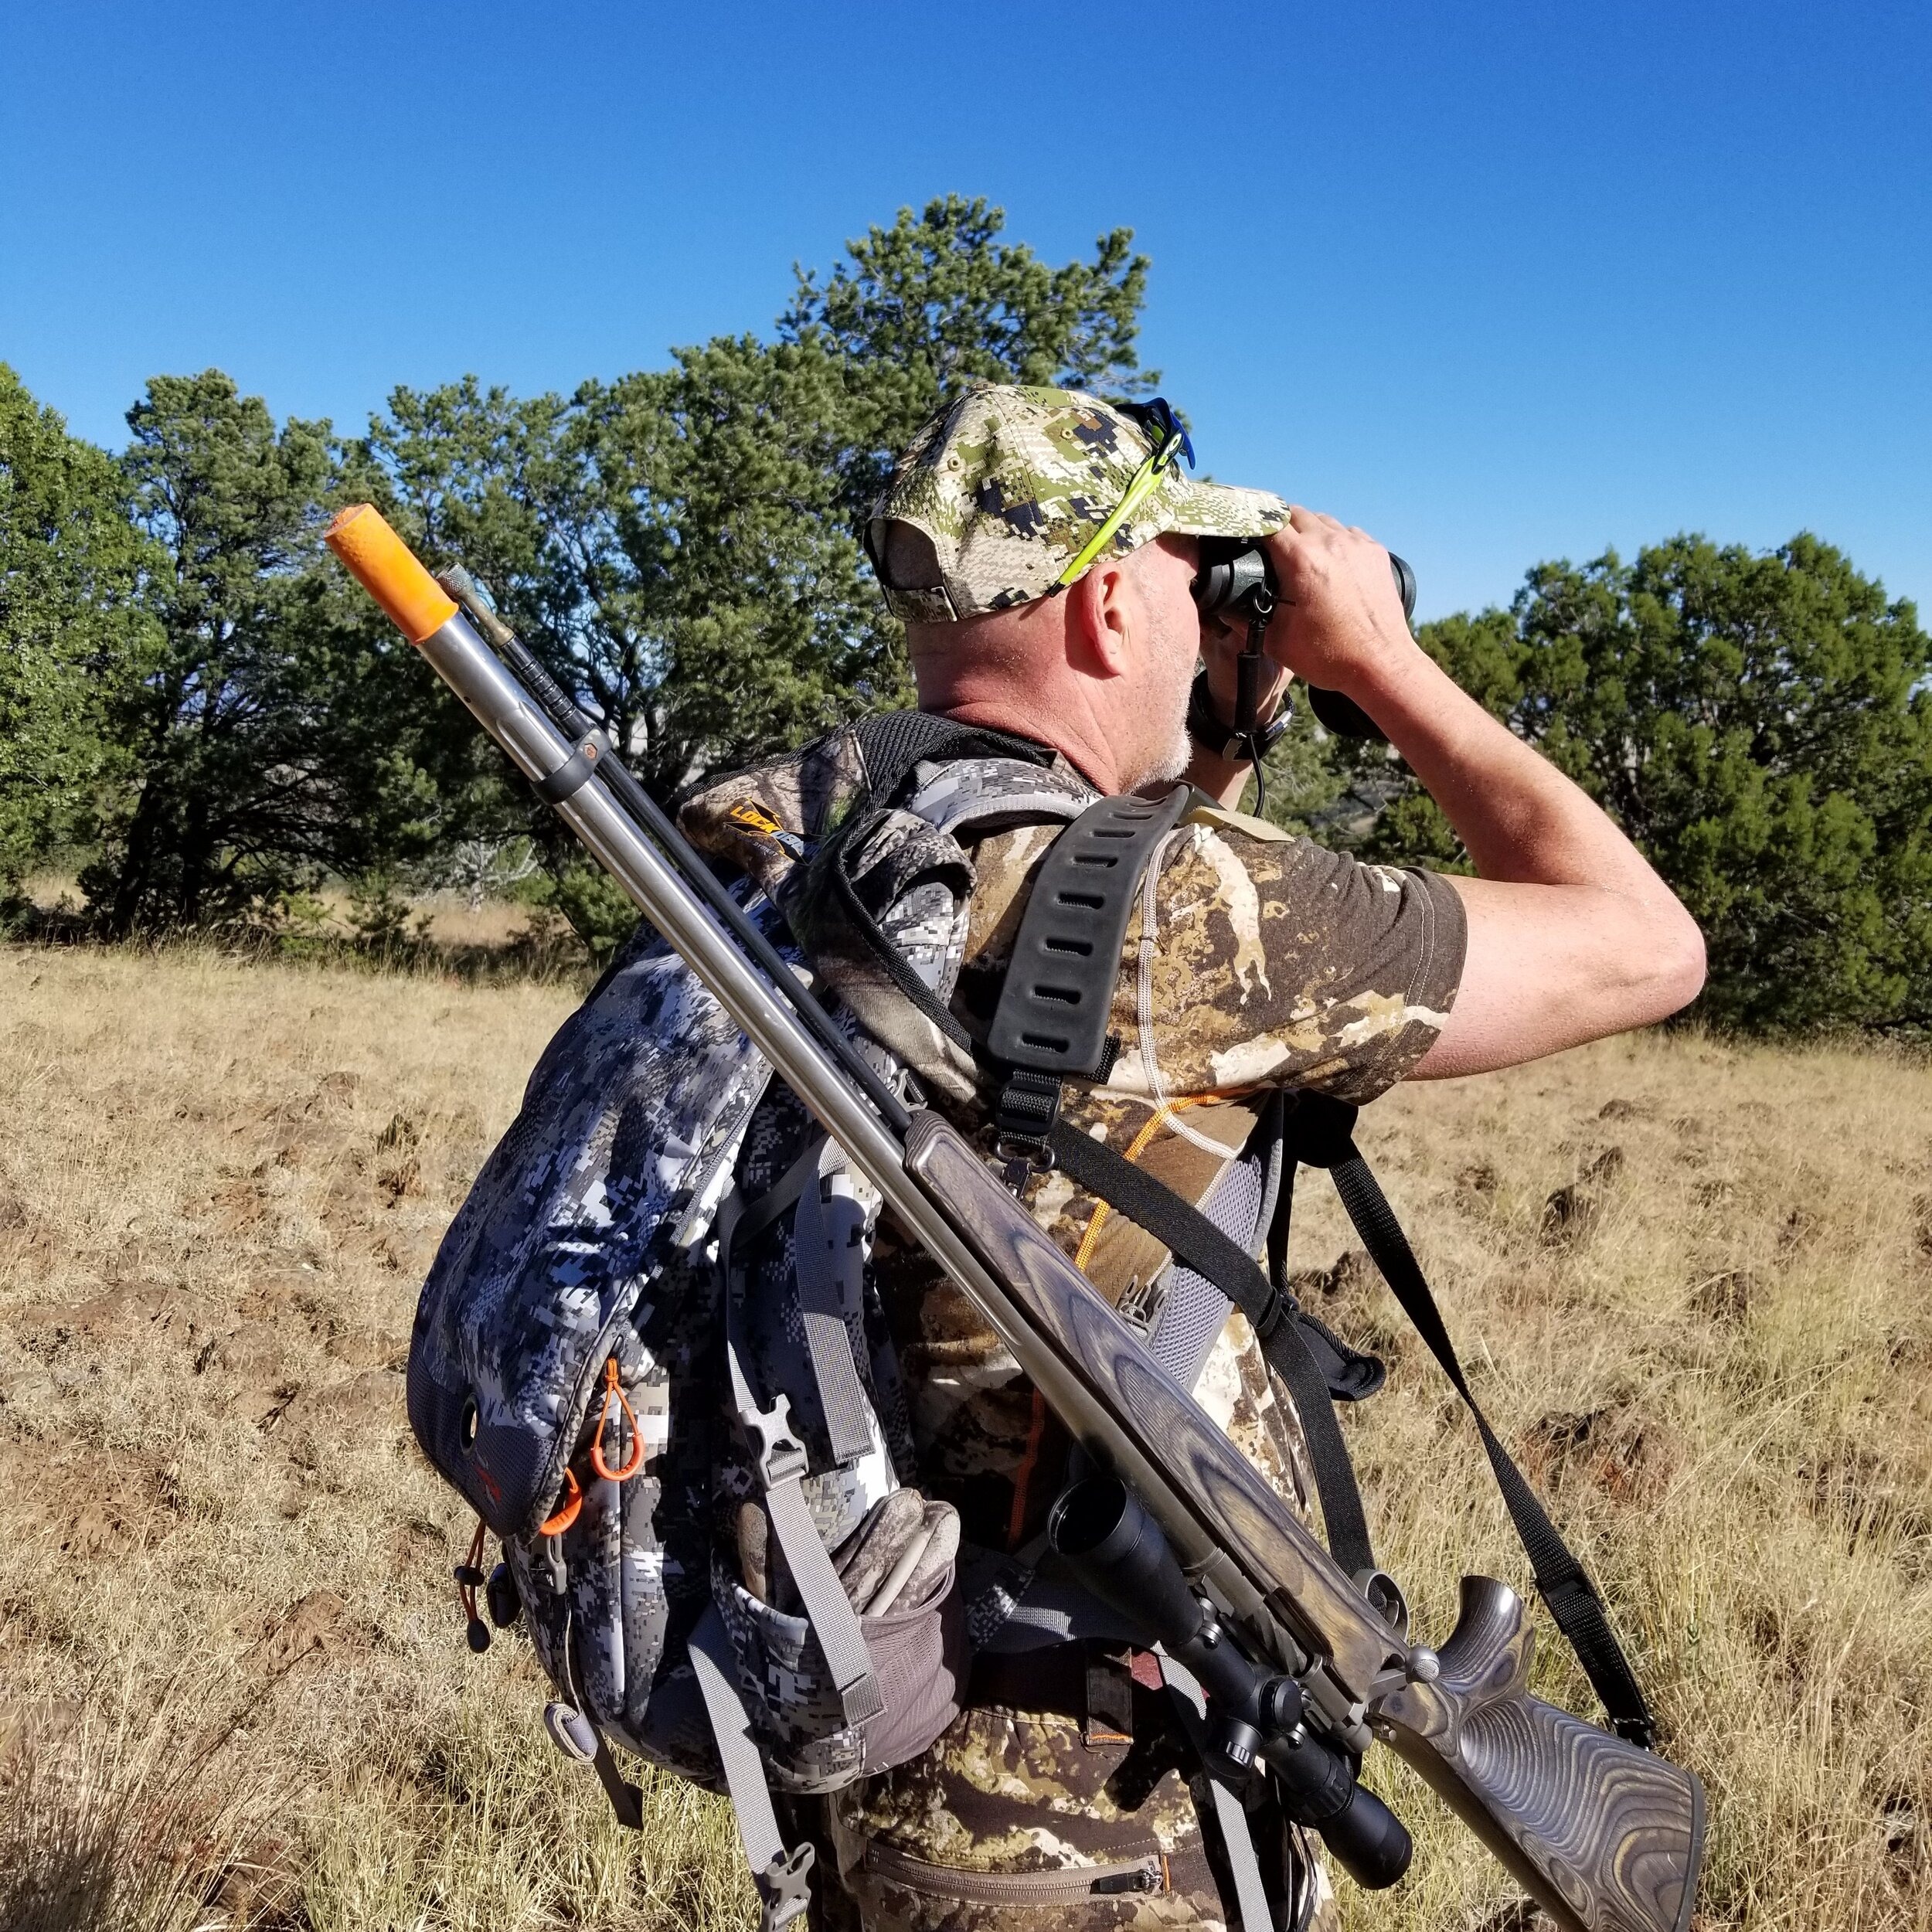 Randy Milligan muzzle loader with muzzle cover sq.jpg